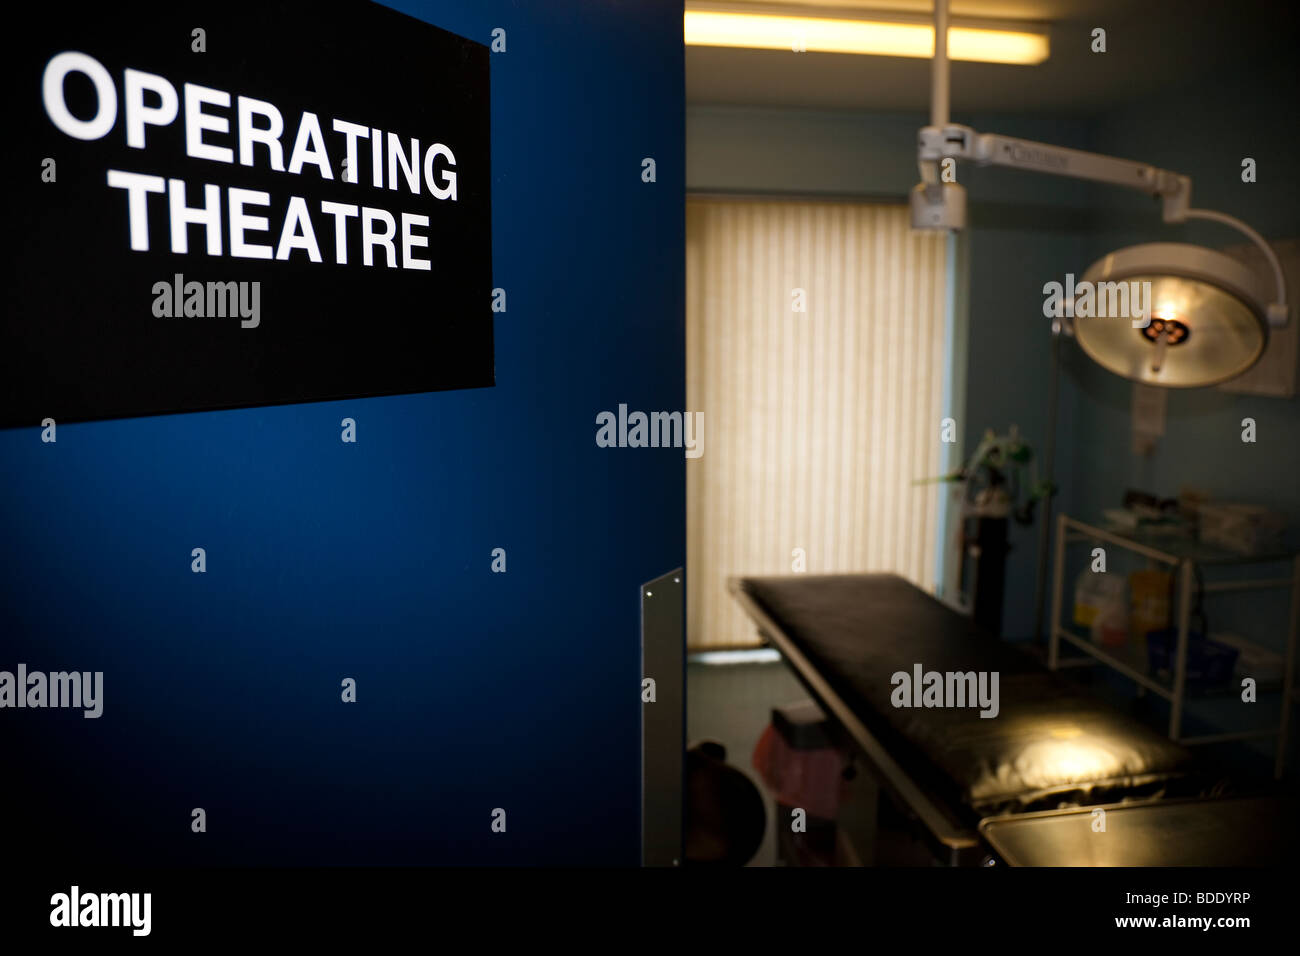 Operating Theatre with Door Open - Stock Image